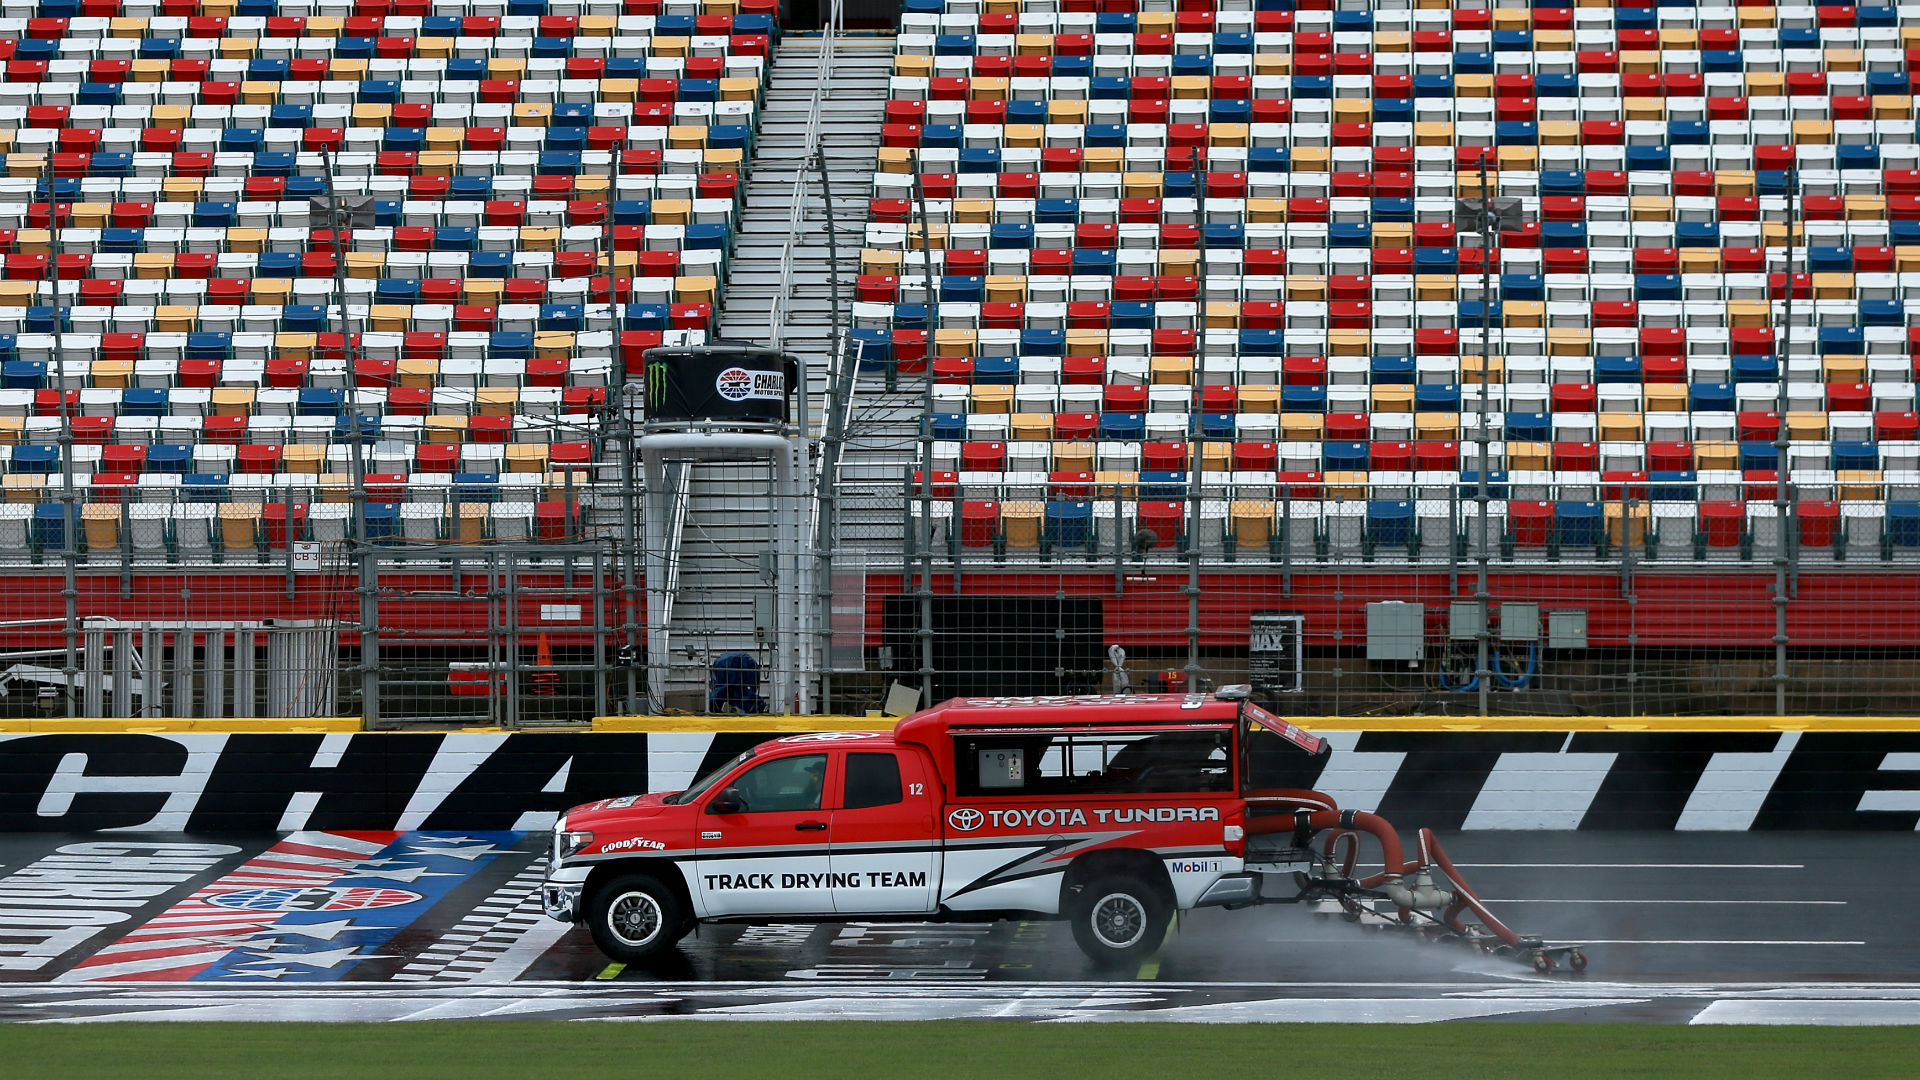 NASCAR race weather: How long will rain in Charlotte forecast delay Wednesday's Cup race? 1